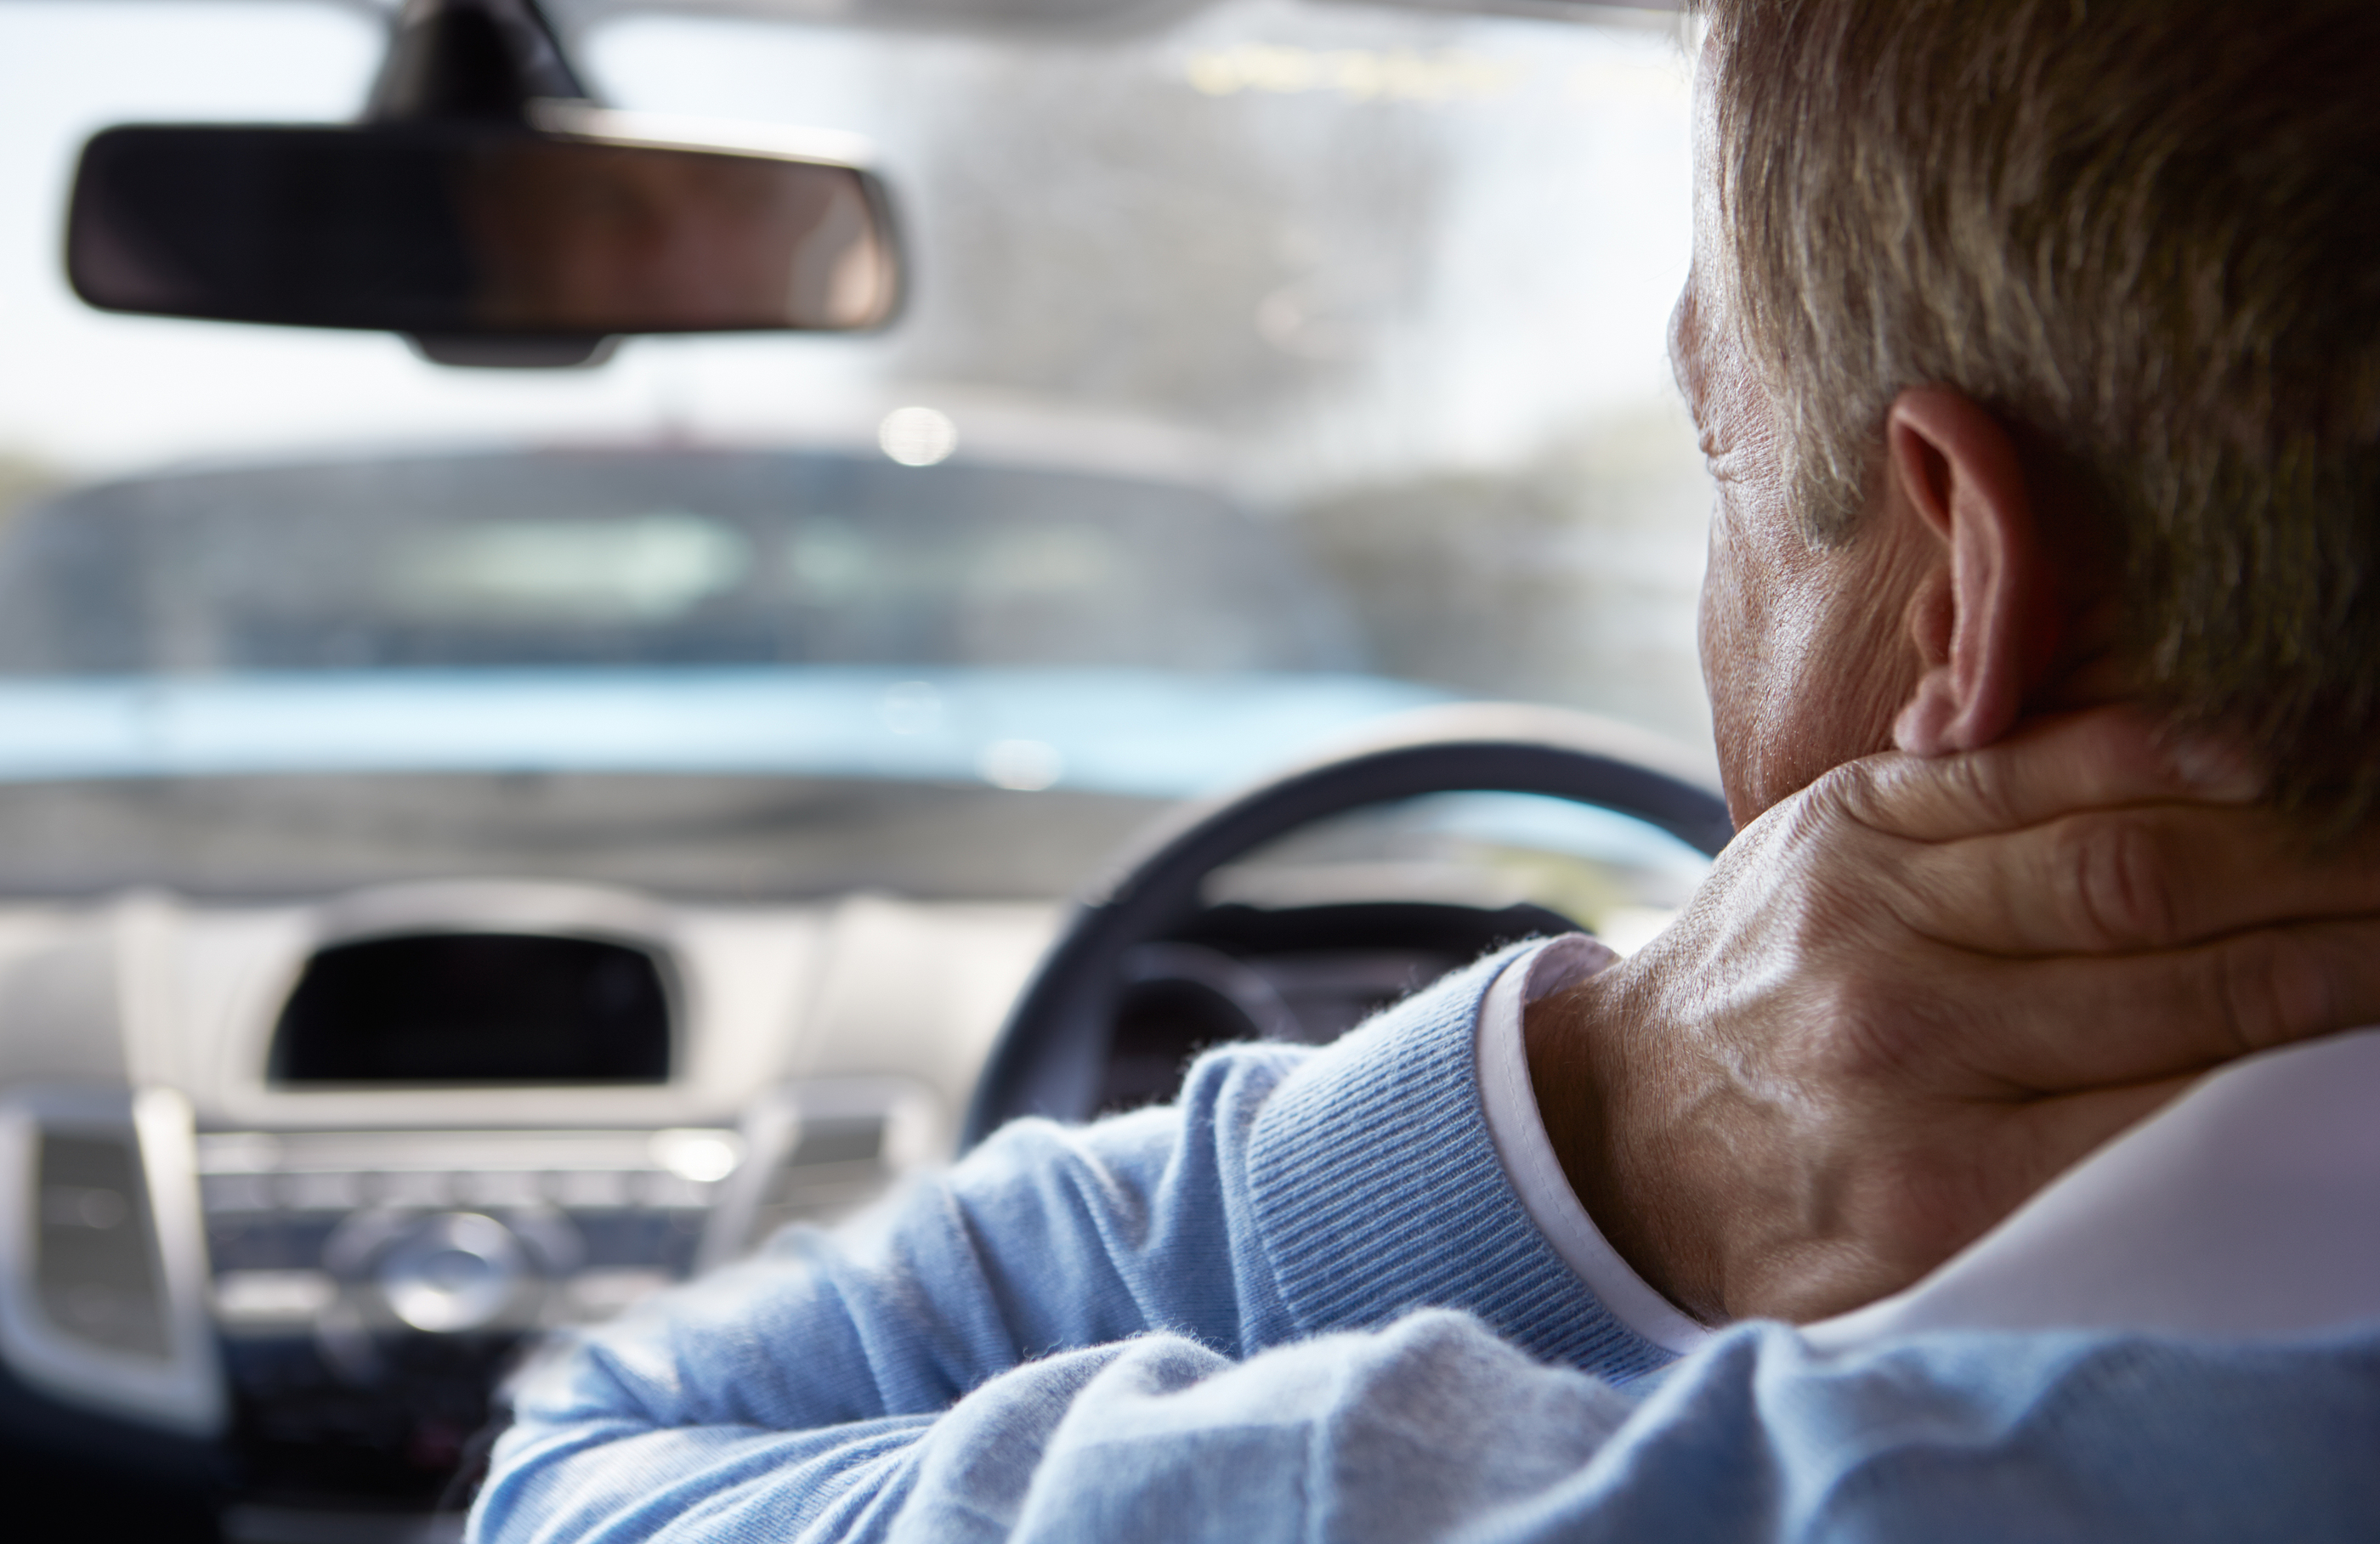 Dr. Dean Zusmer – How to Prevent or Reduce Whiplash and Back Injuries